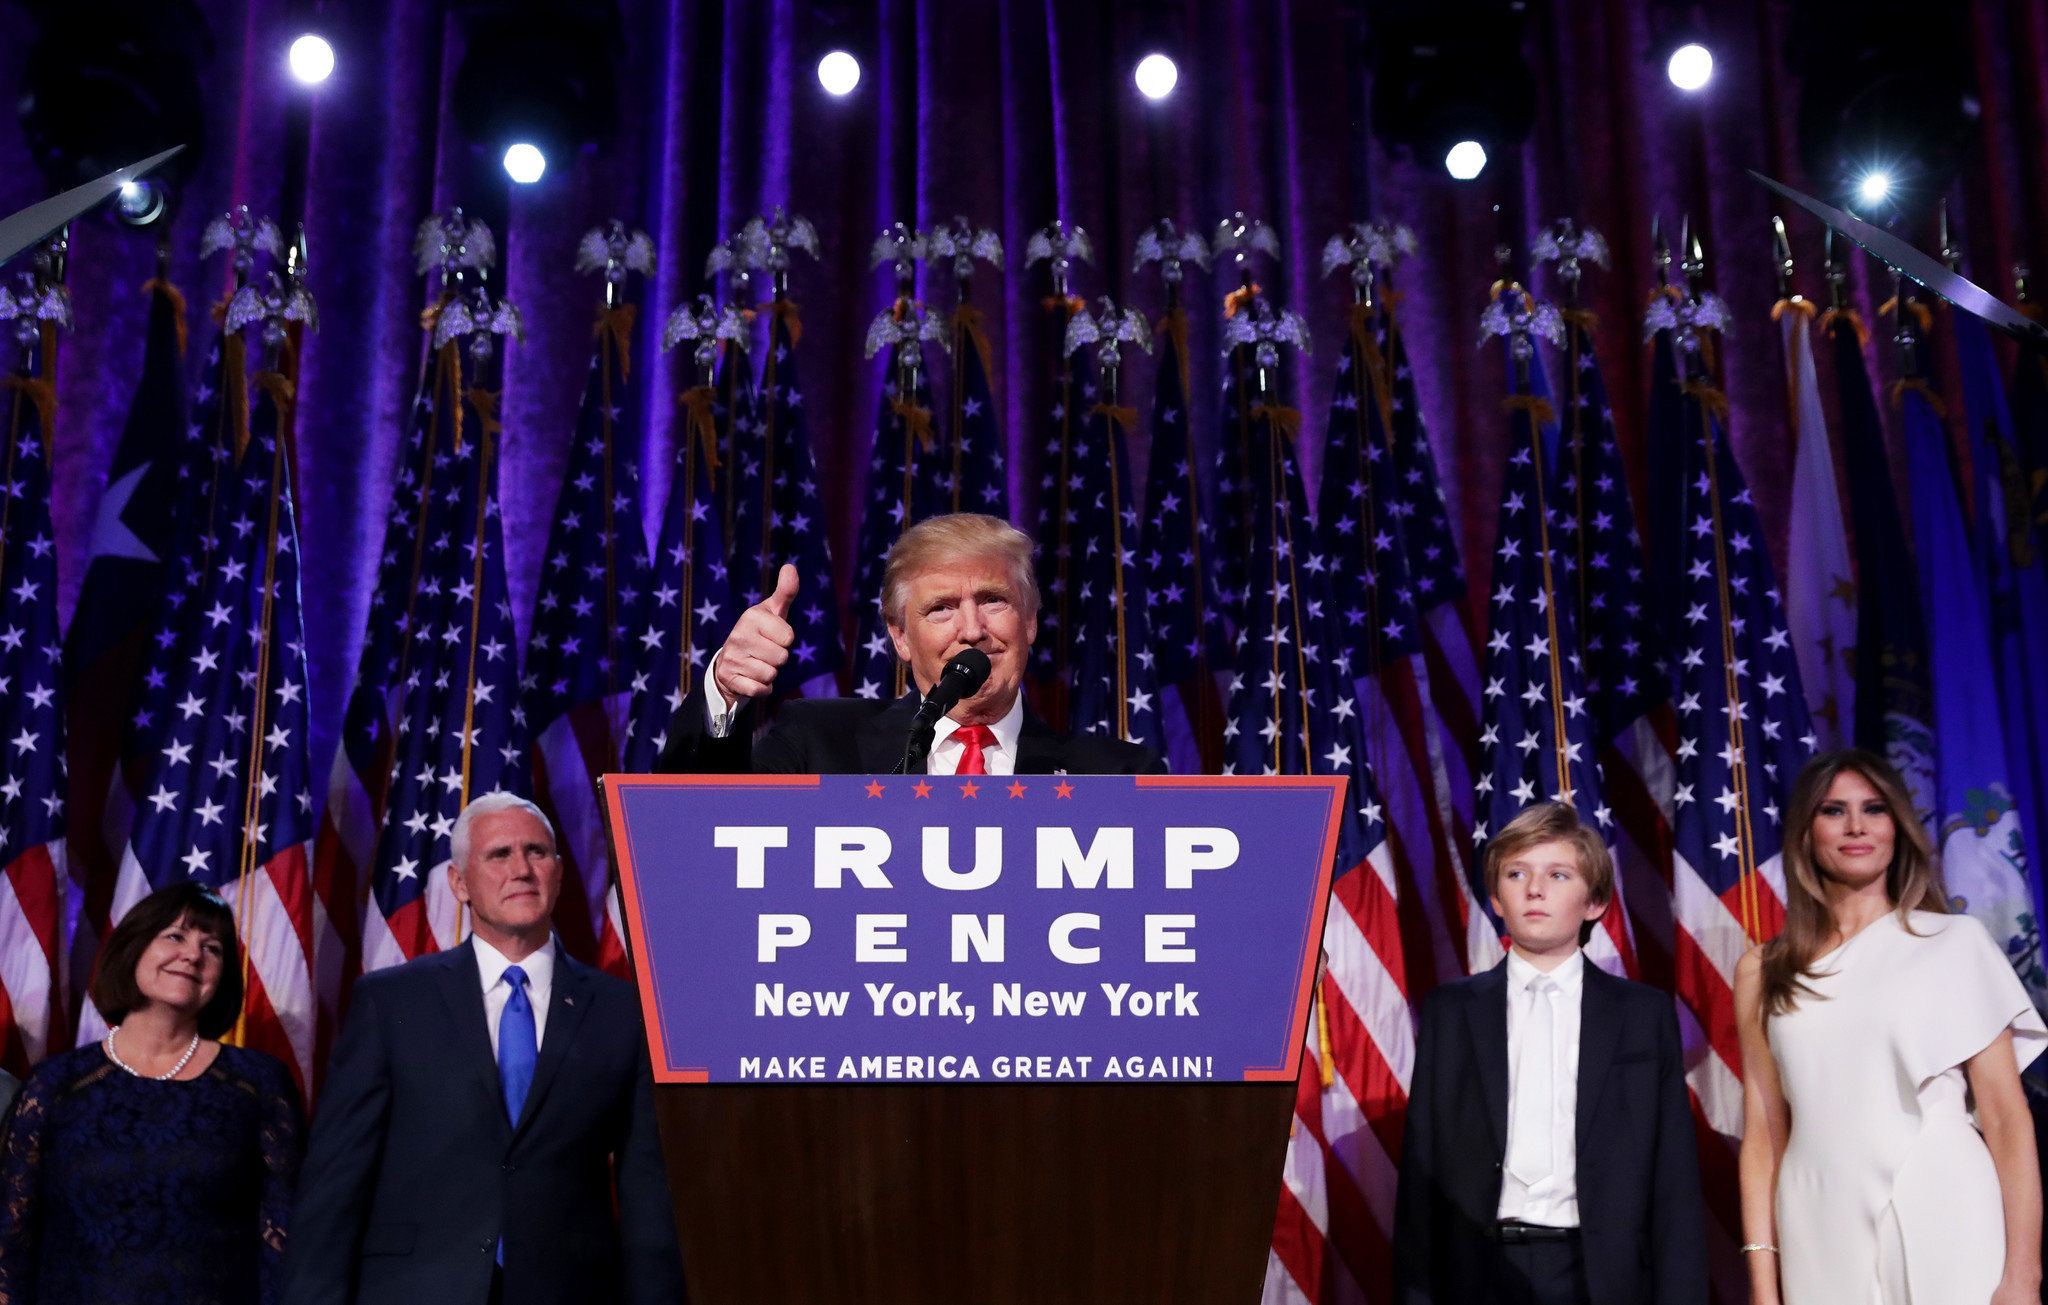 Donald Trump delivers his acceptance speech at the New York Hilton Midtown on election night in November.